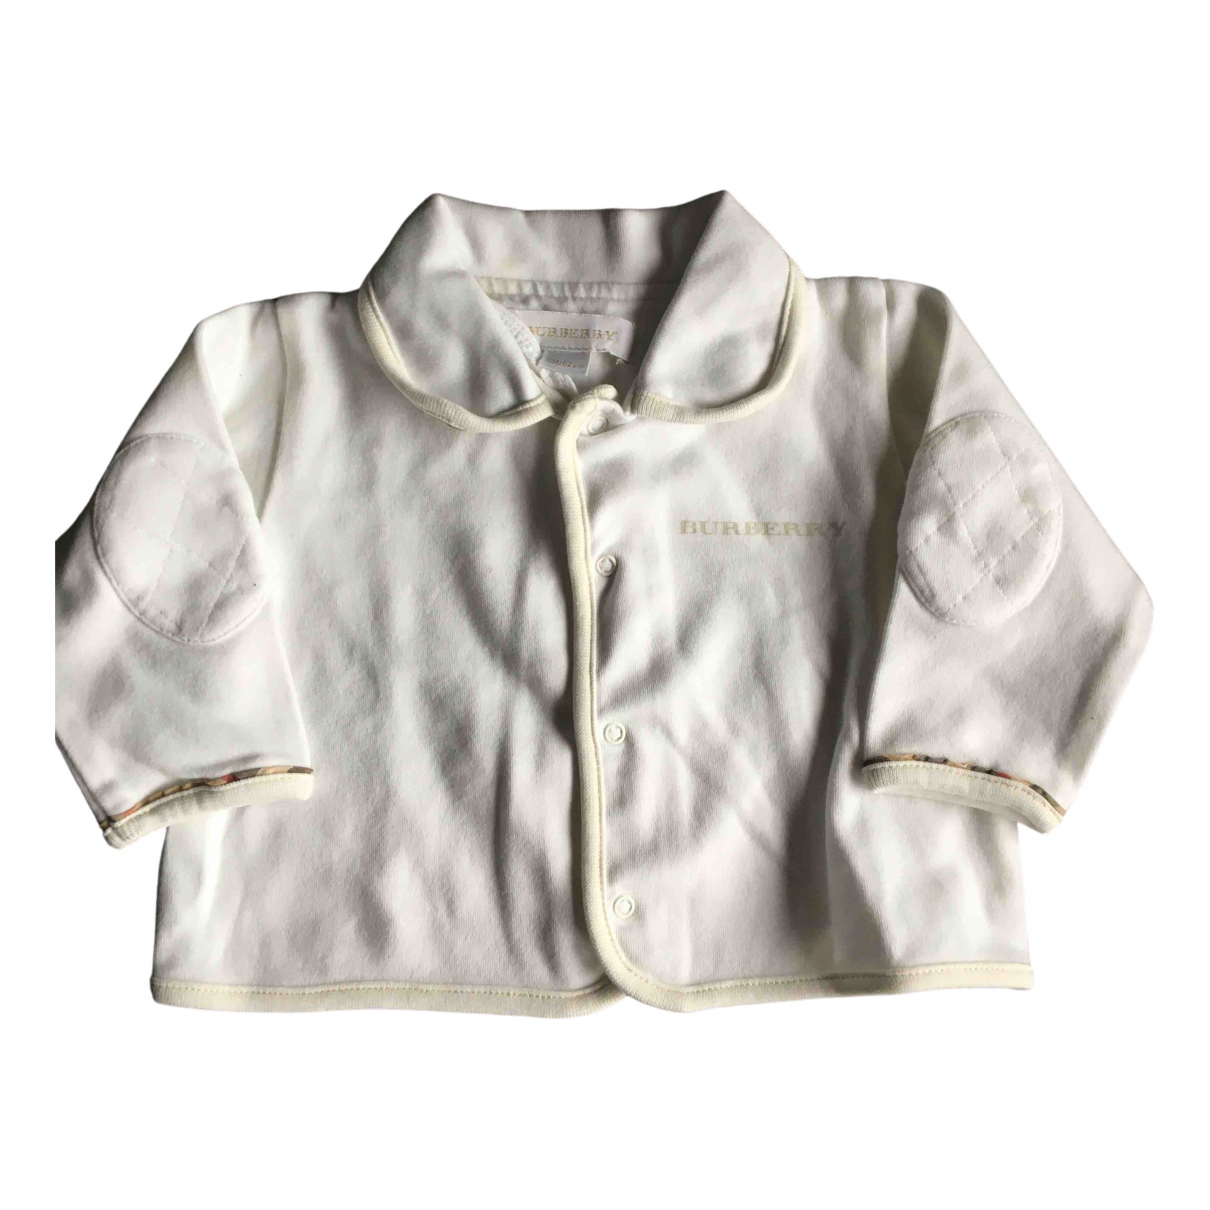 Burberry N White Cotton Knitwear for Kids 3 months - up to 60cm FR